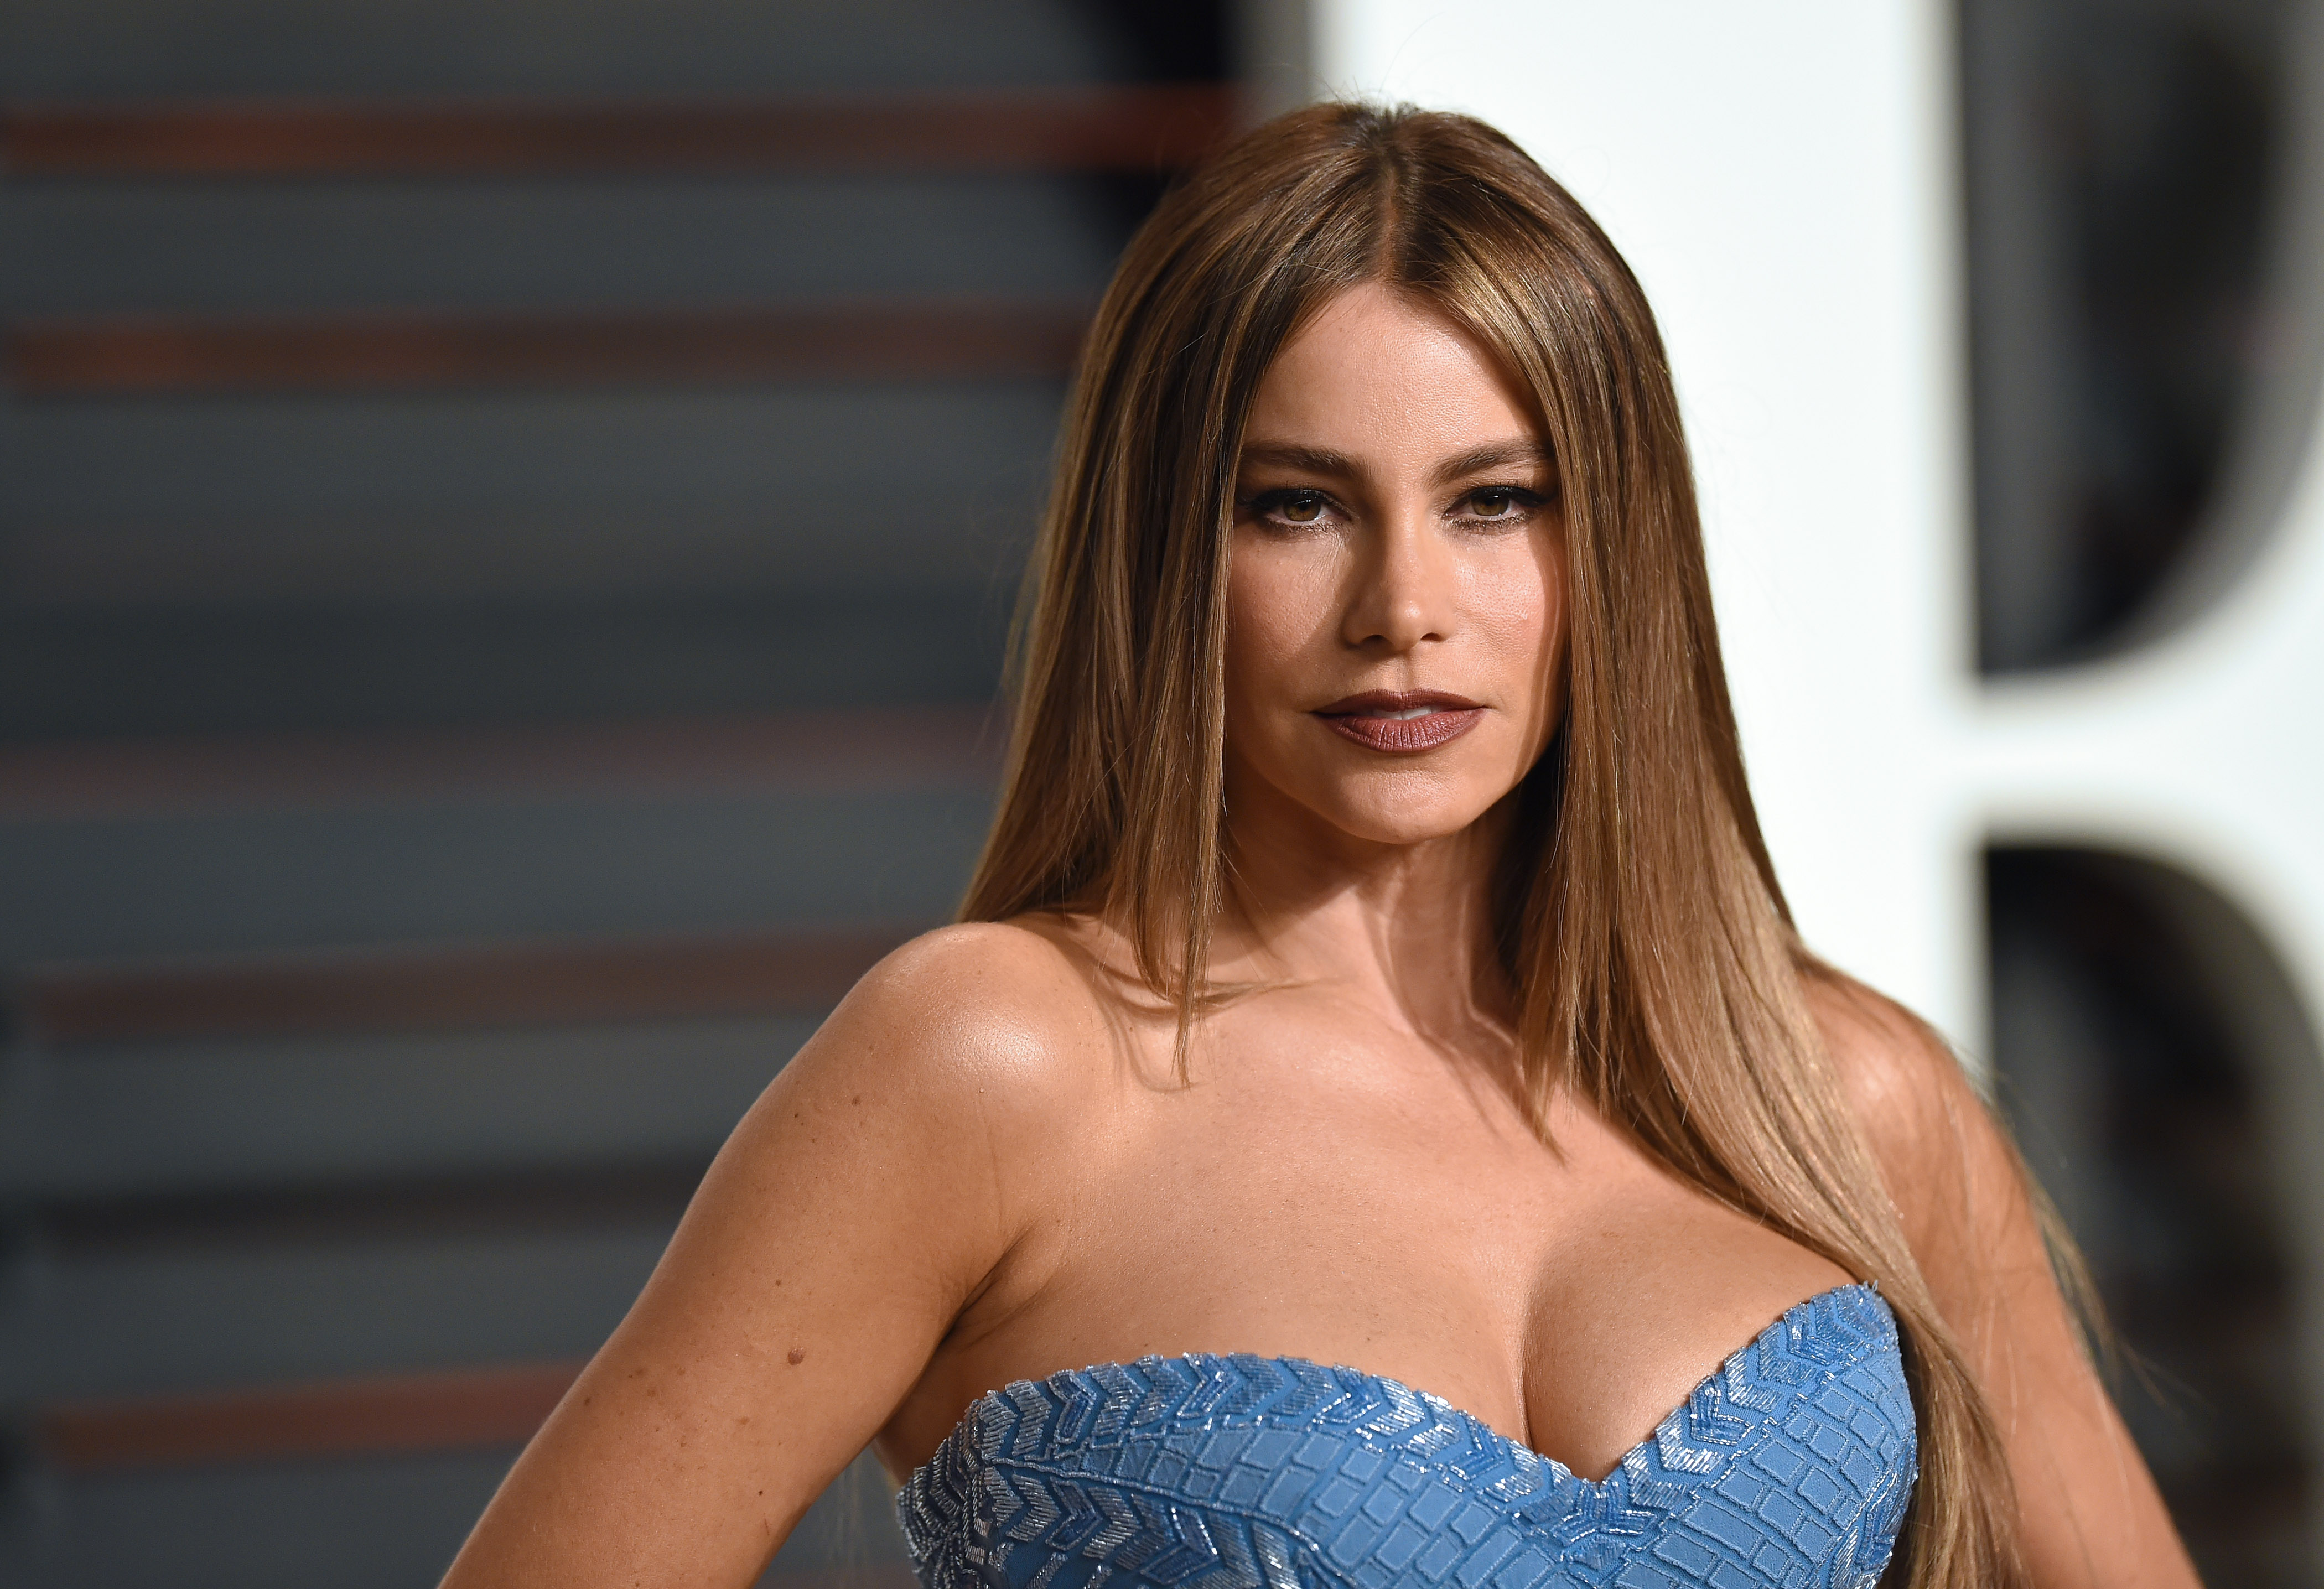 manolo gonzalez vergara dating Actress sofia vergara's rise to fame is documented by her son, manolo gonzalez vergara, is a new short-video series on snapchat discover channel fusion.